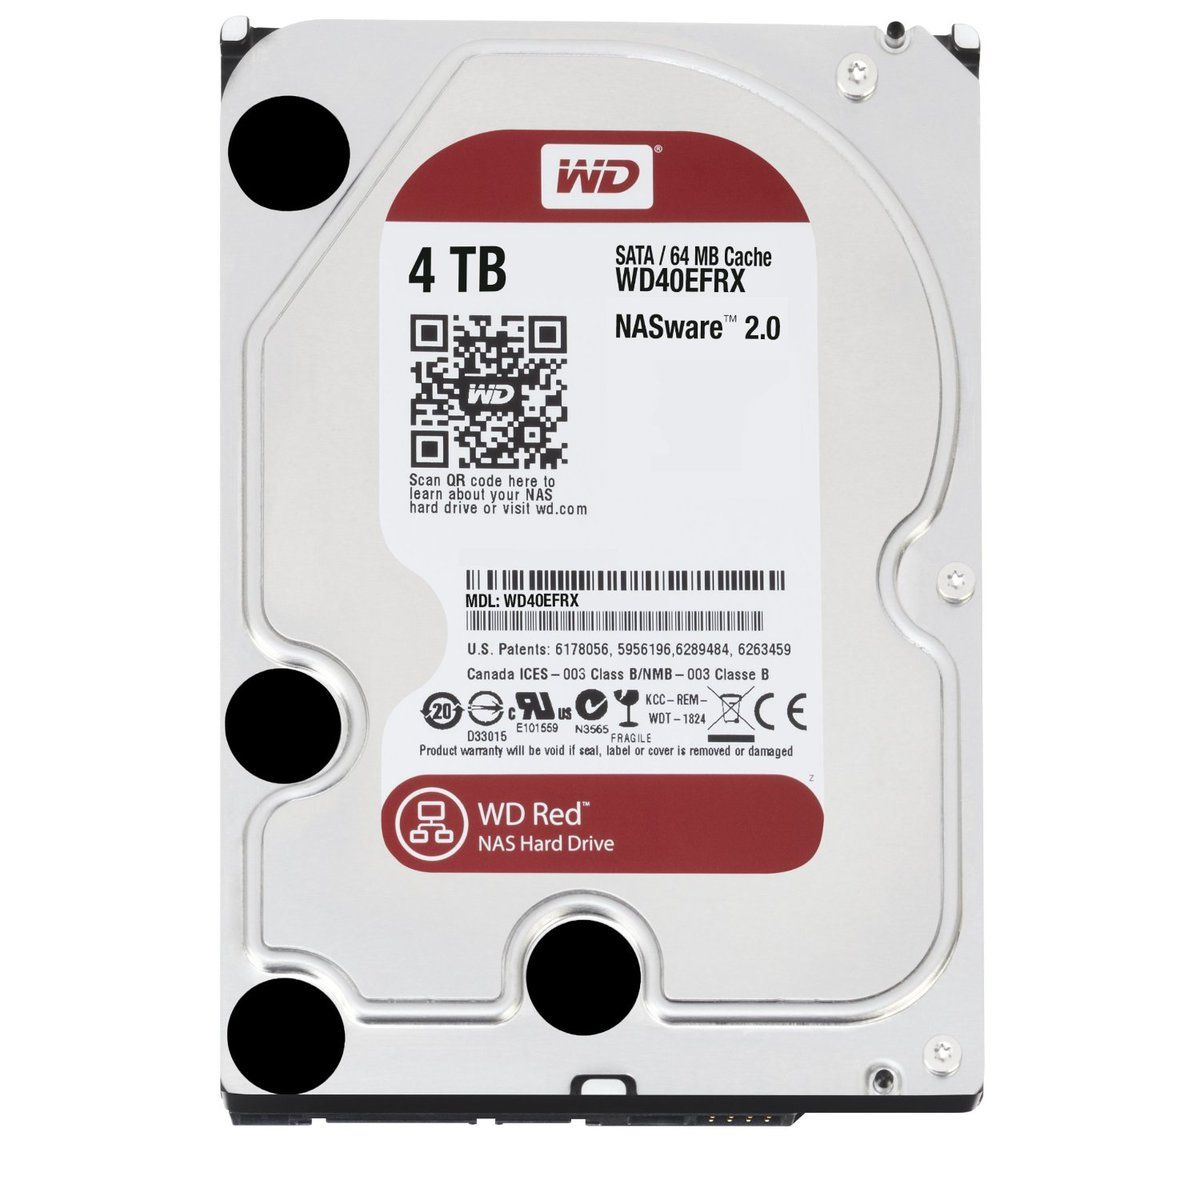 Жесткий диск WESTERN DIGITAL WD40EFRX 4TB SATA 6GB/S 64MB RED от Ravta